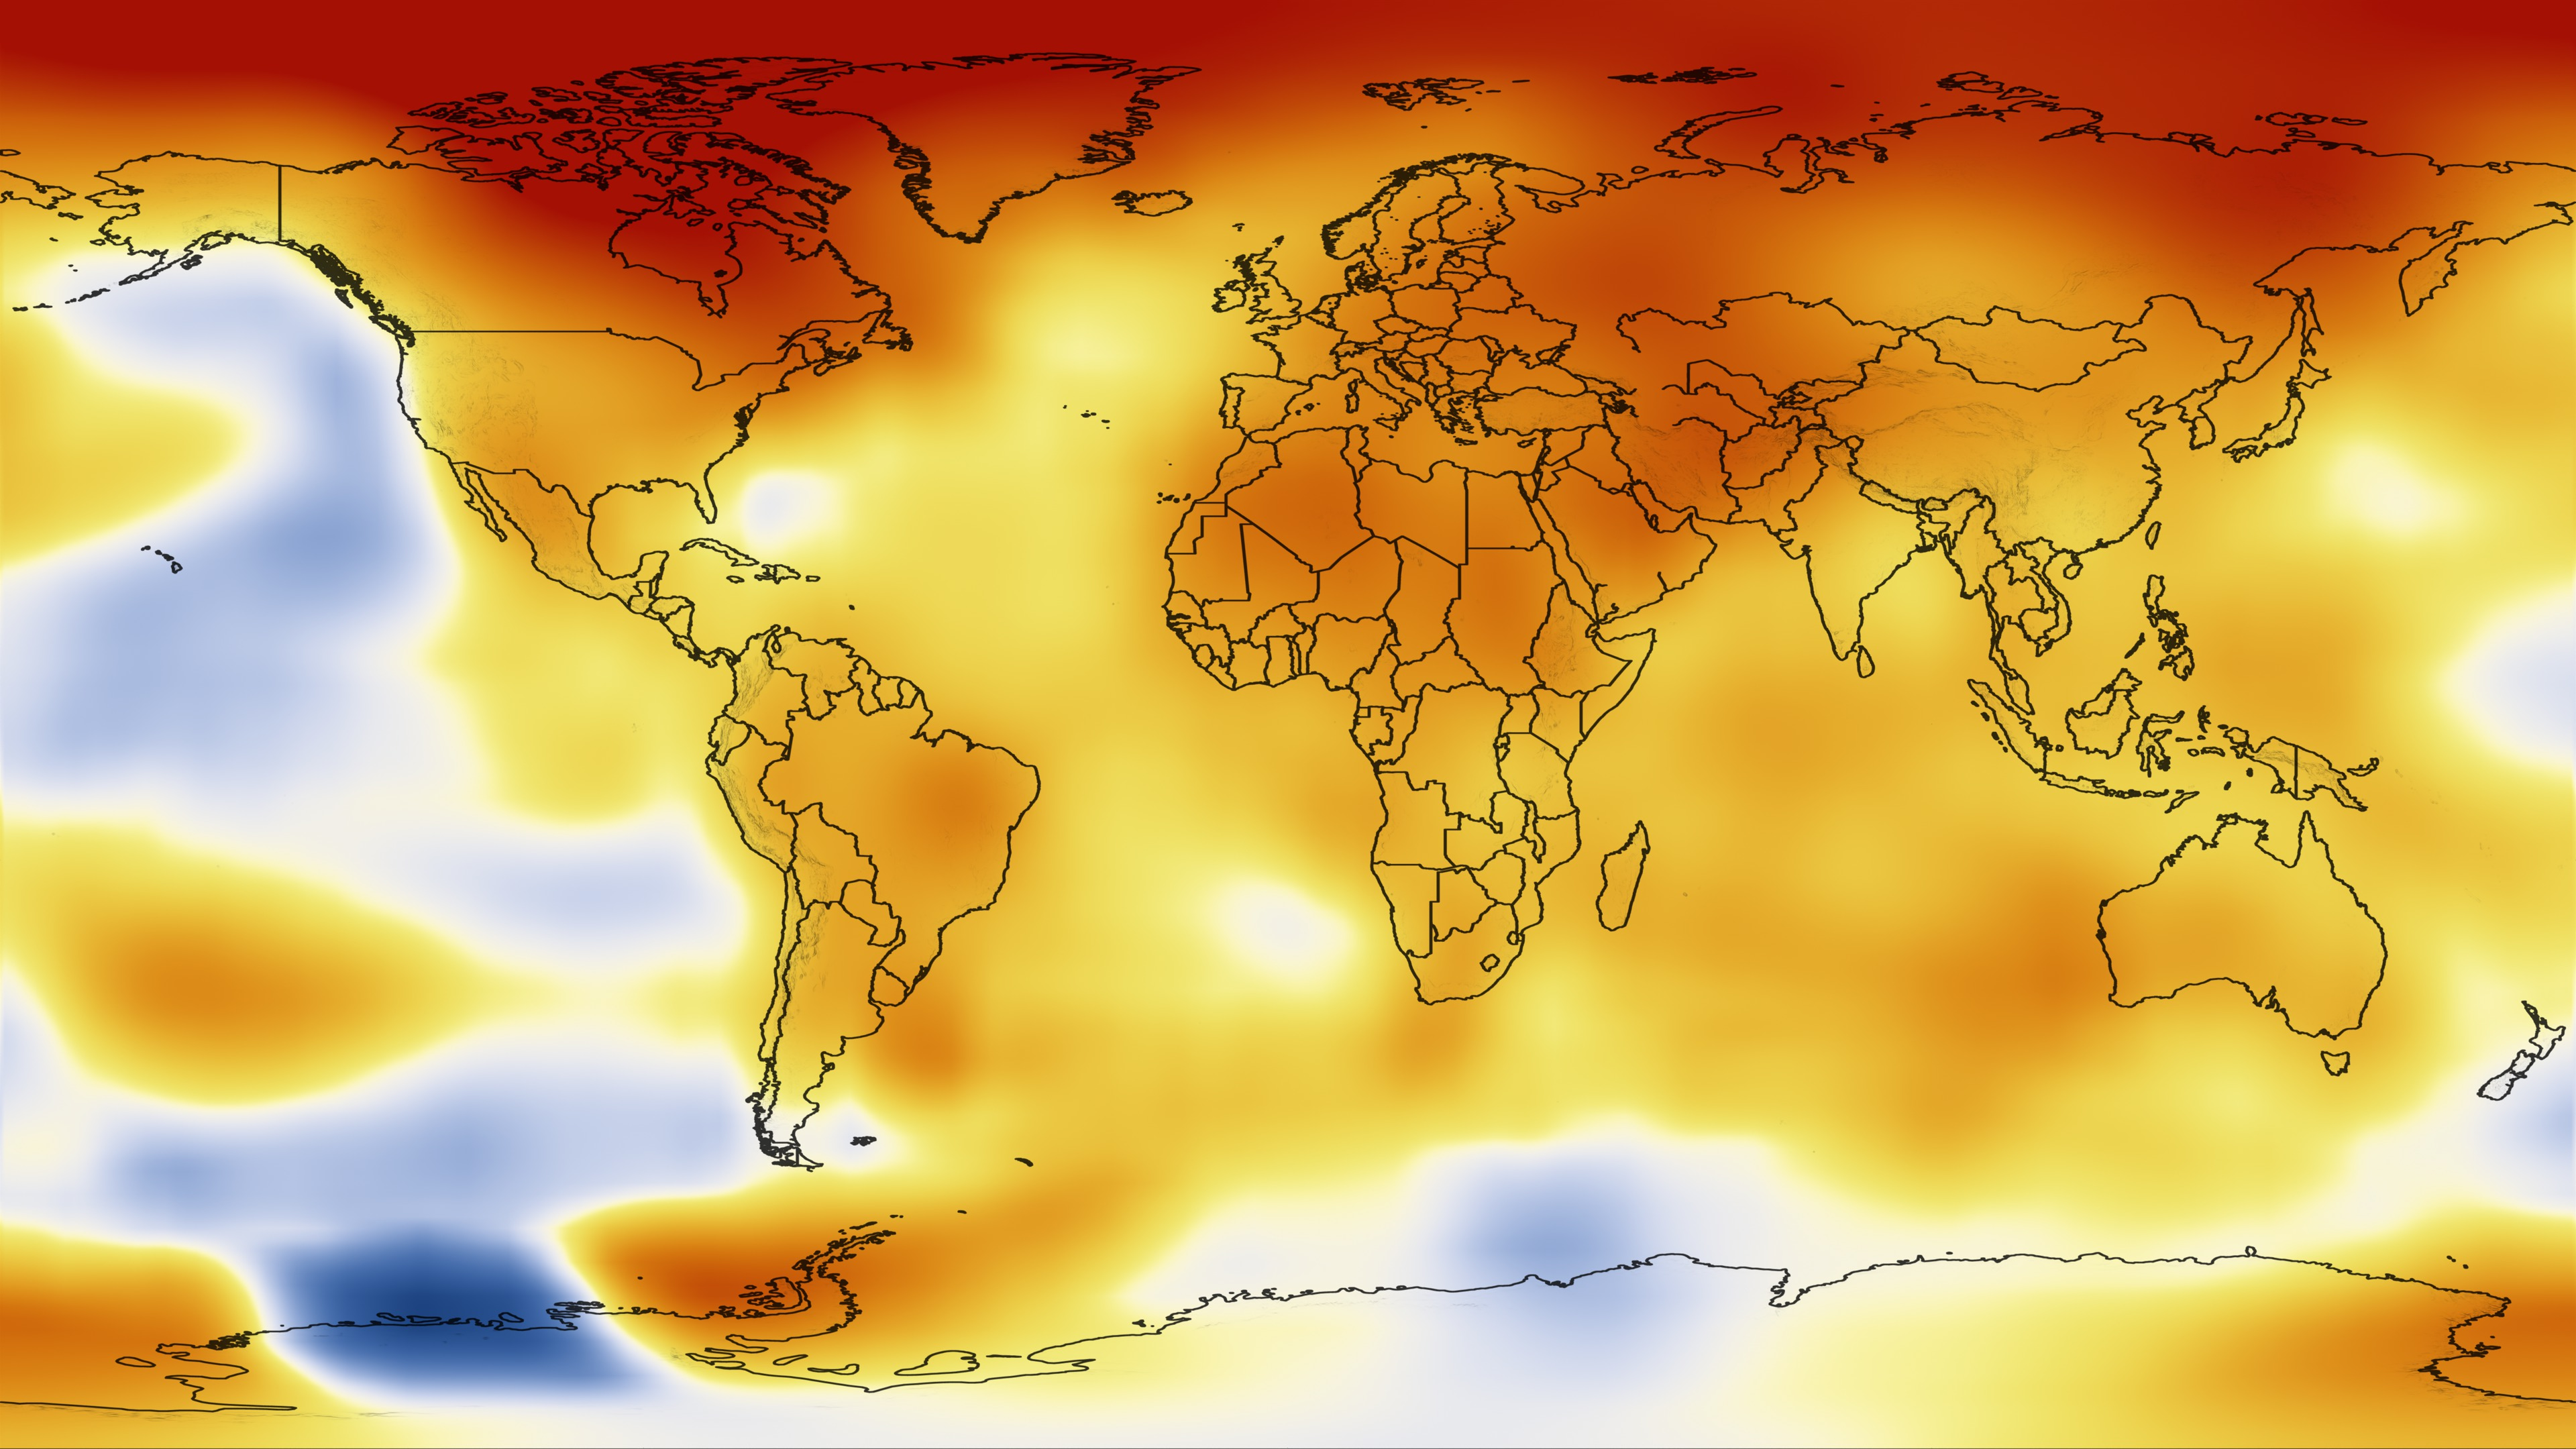 SVS: Five-Year Global Temperature Anomalies from 1880 to 2012